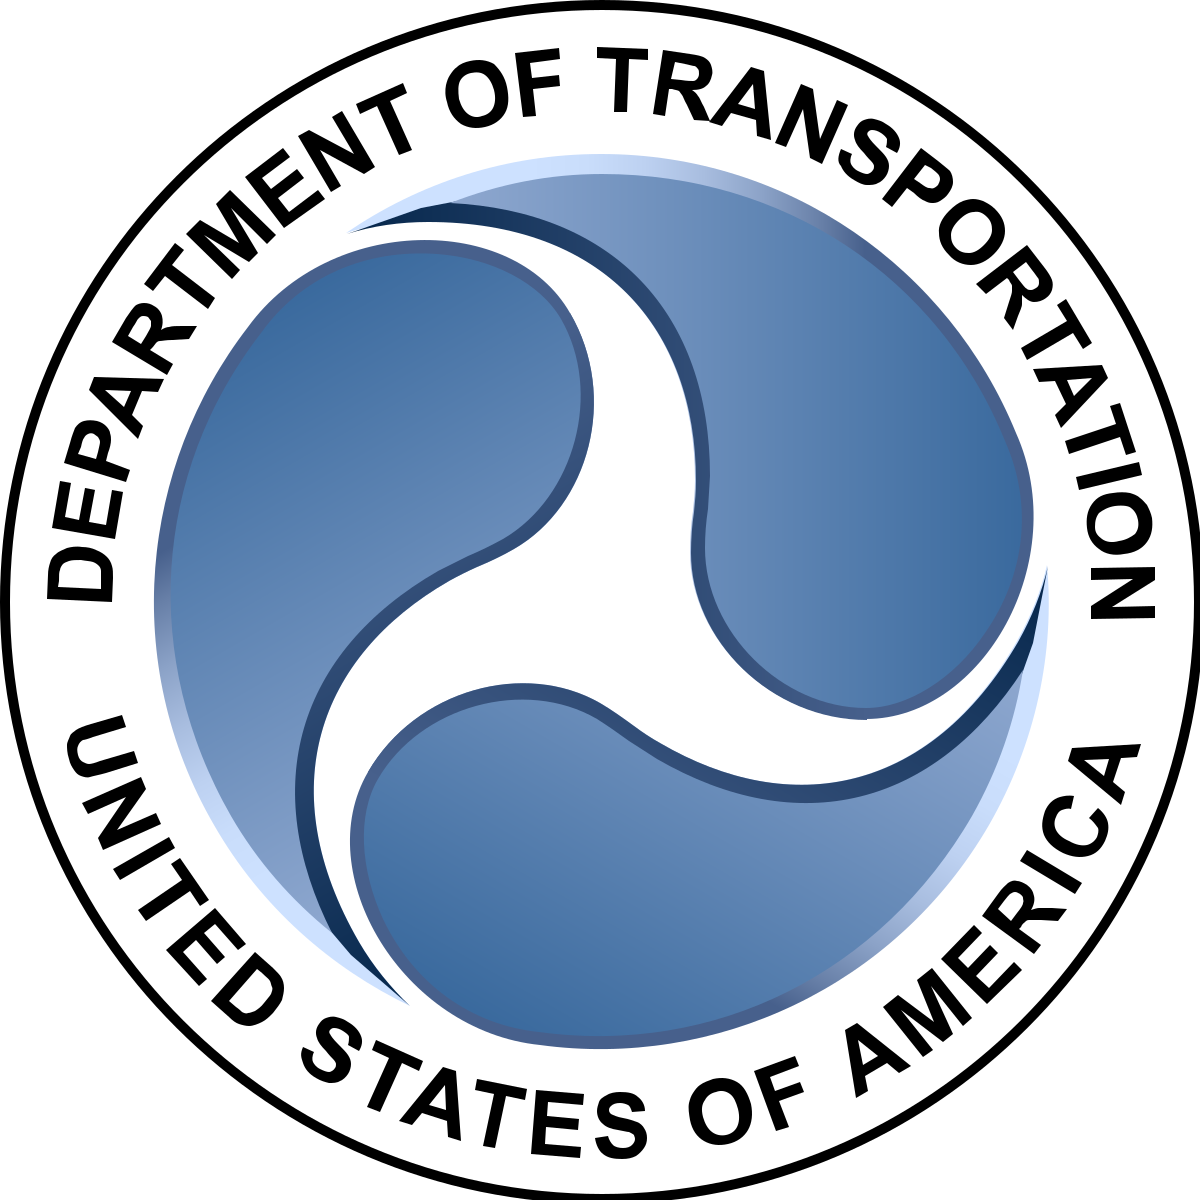 Department of Transportation agency seal